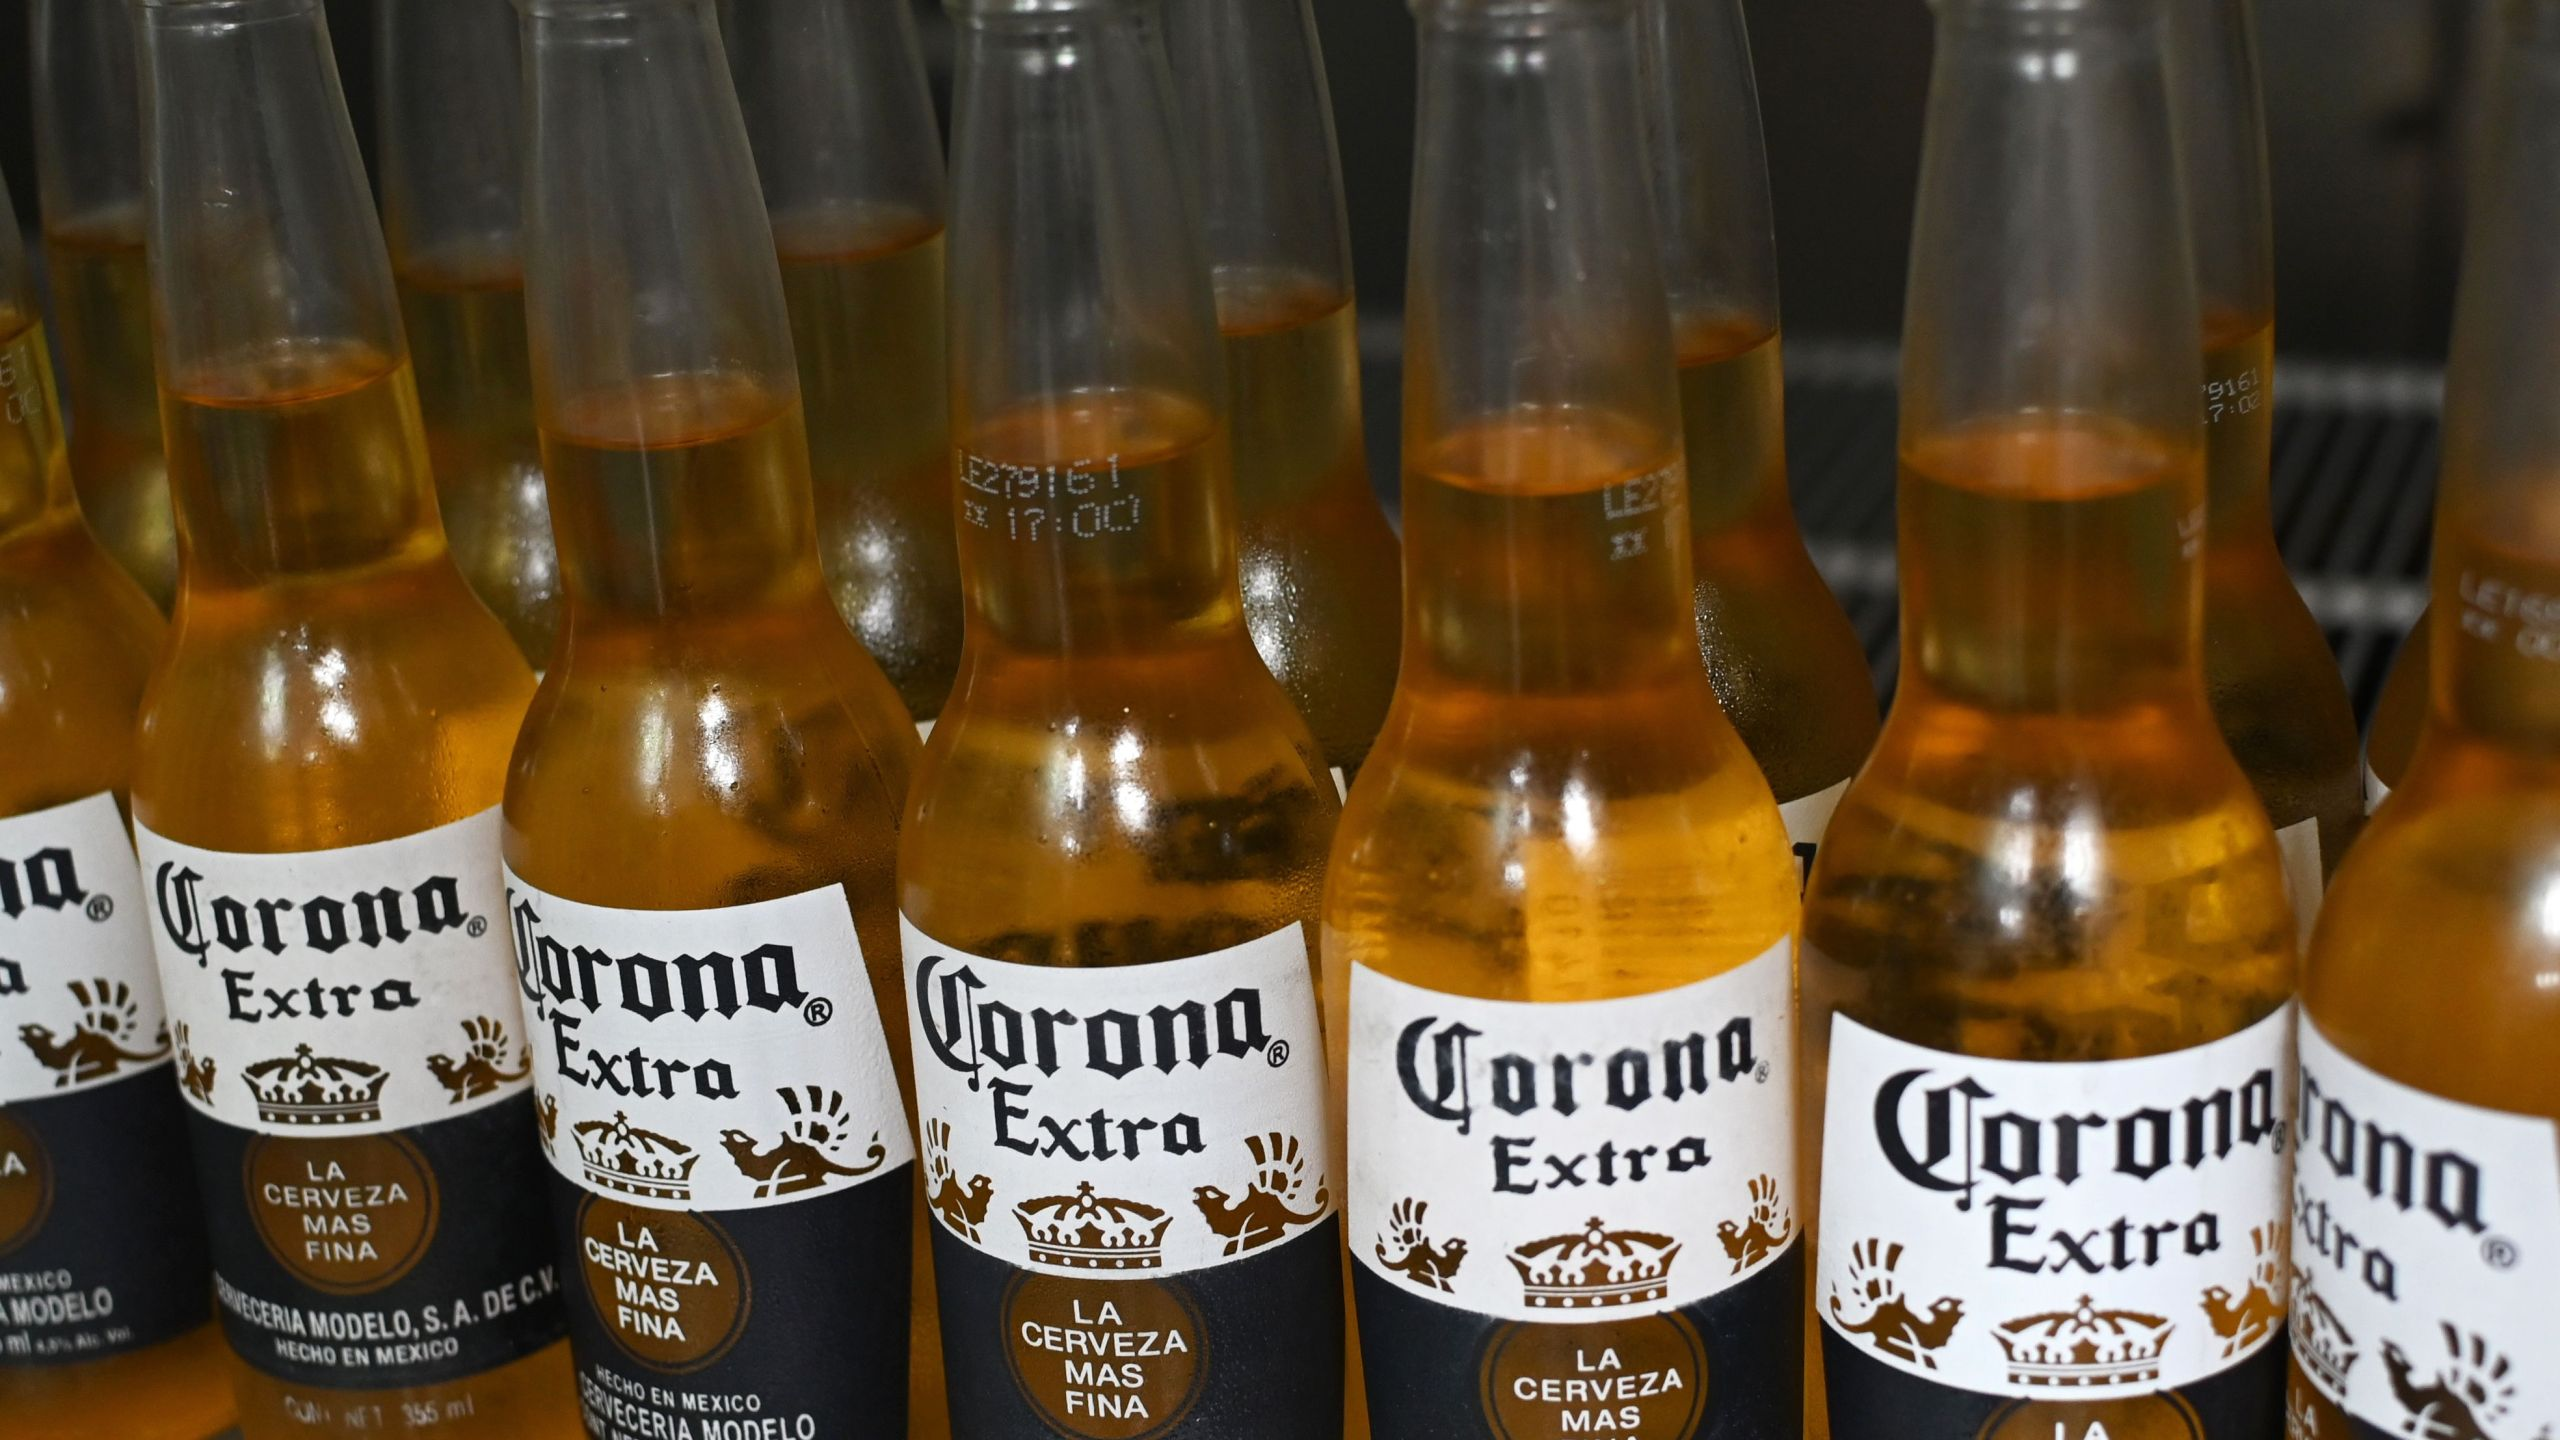 Bottles of Corona beer are seen in Mexico City on June 4, 2019. (Credit: Rodrigo Arangua / AFP / Getty Images)